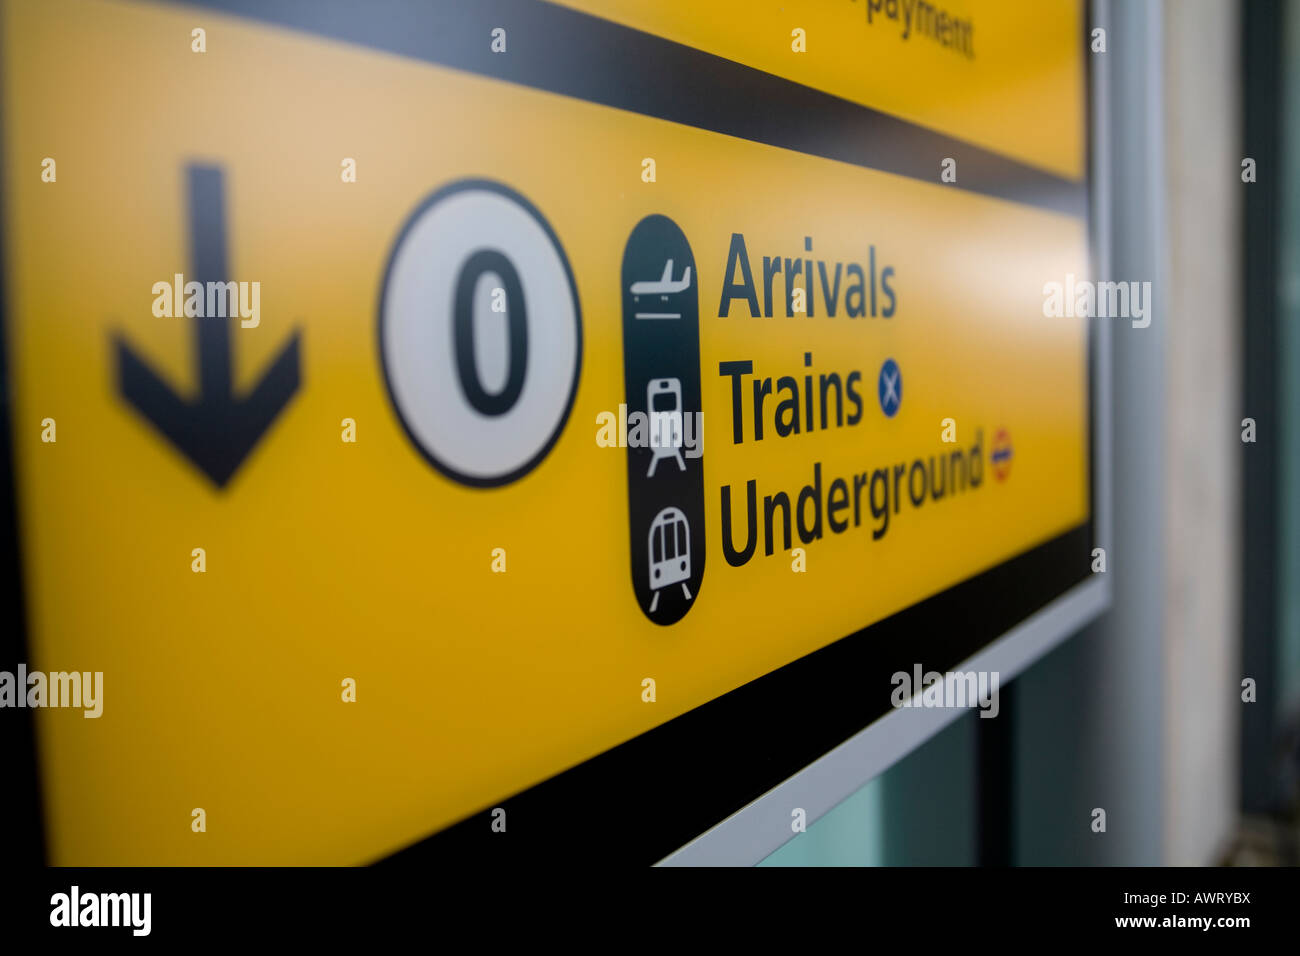 An arrivals, trains and underground sign at London Heathrow Airport, terminal 5 - Stock Image